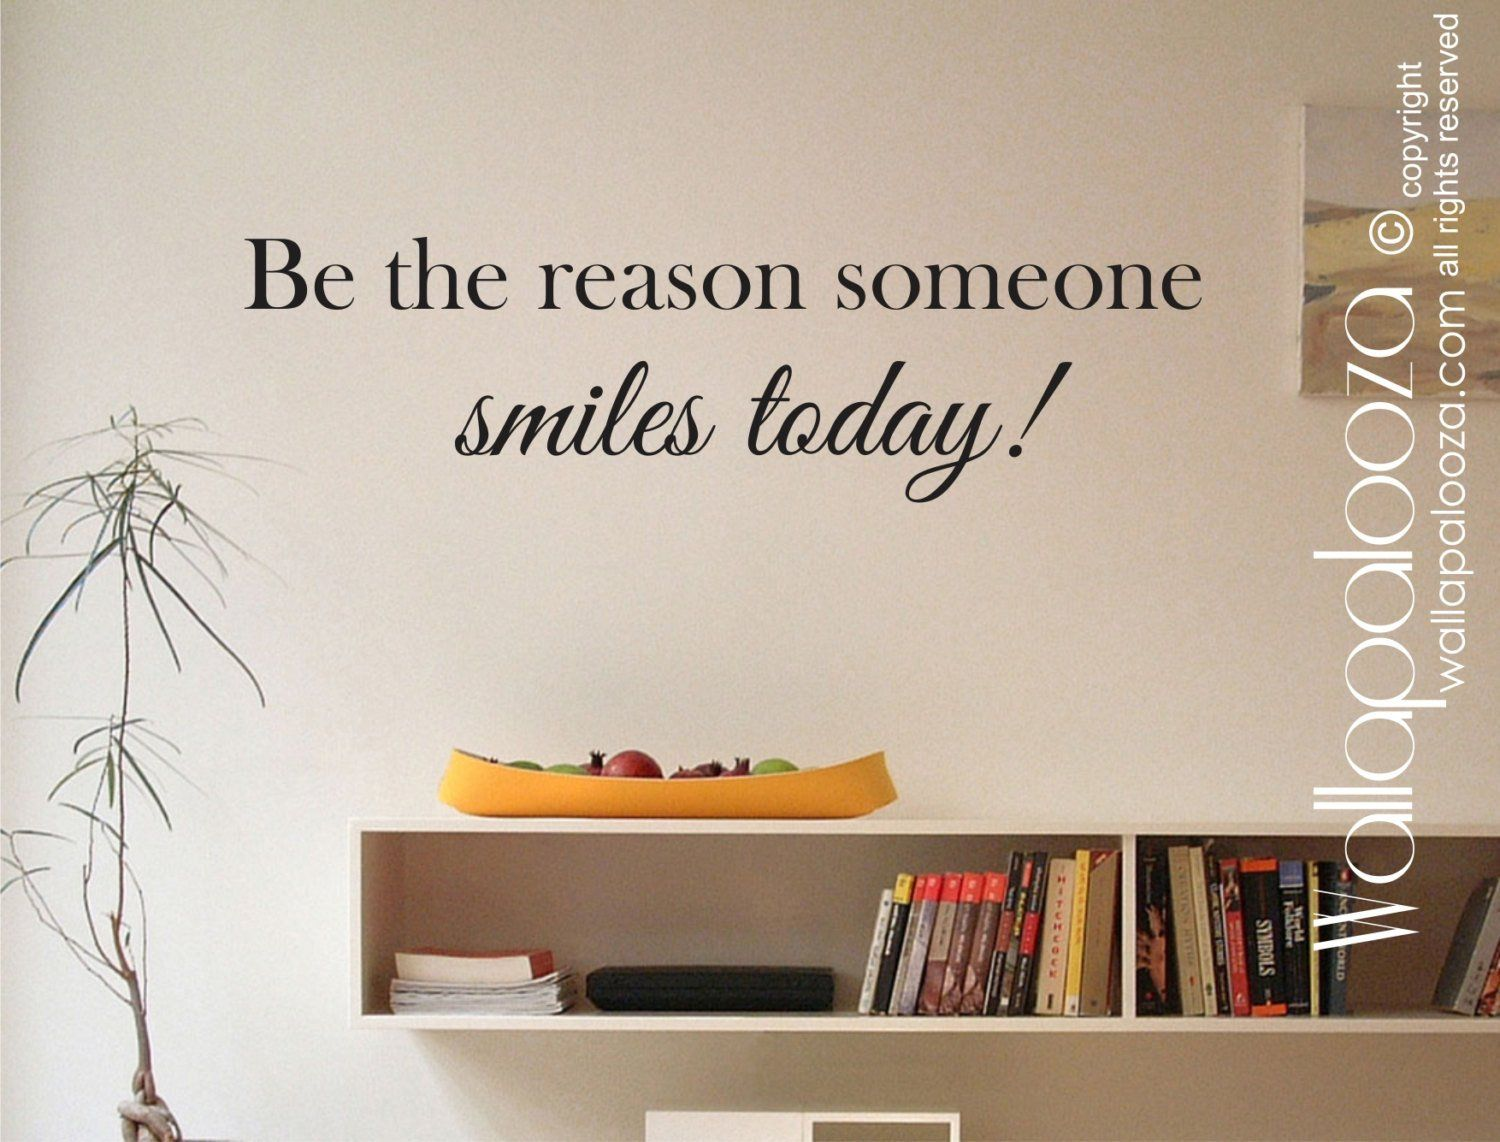 Inspirational wall decal be the reason someone smiles today decor also rh pinterest